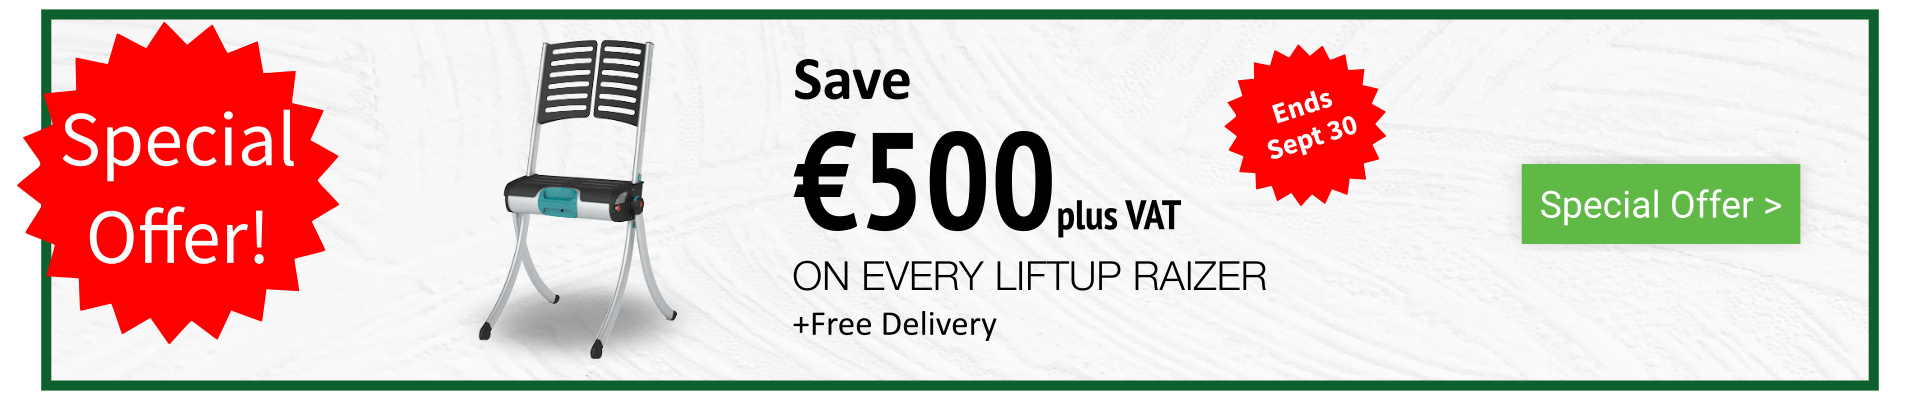 Liftup Raizer - Special Offer - Home Banner - September 2019 - O Neill Healthcare